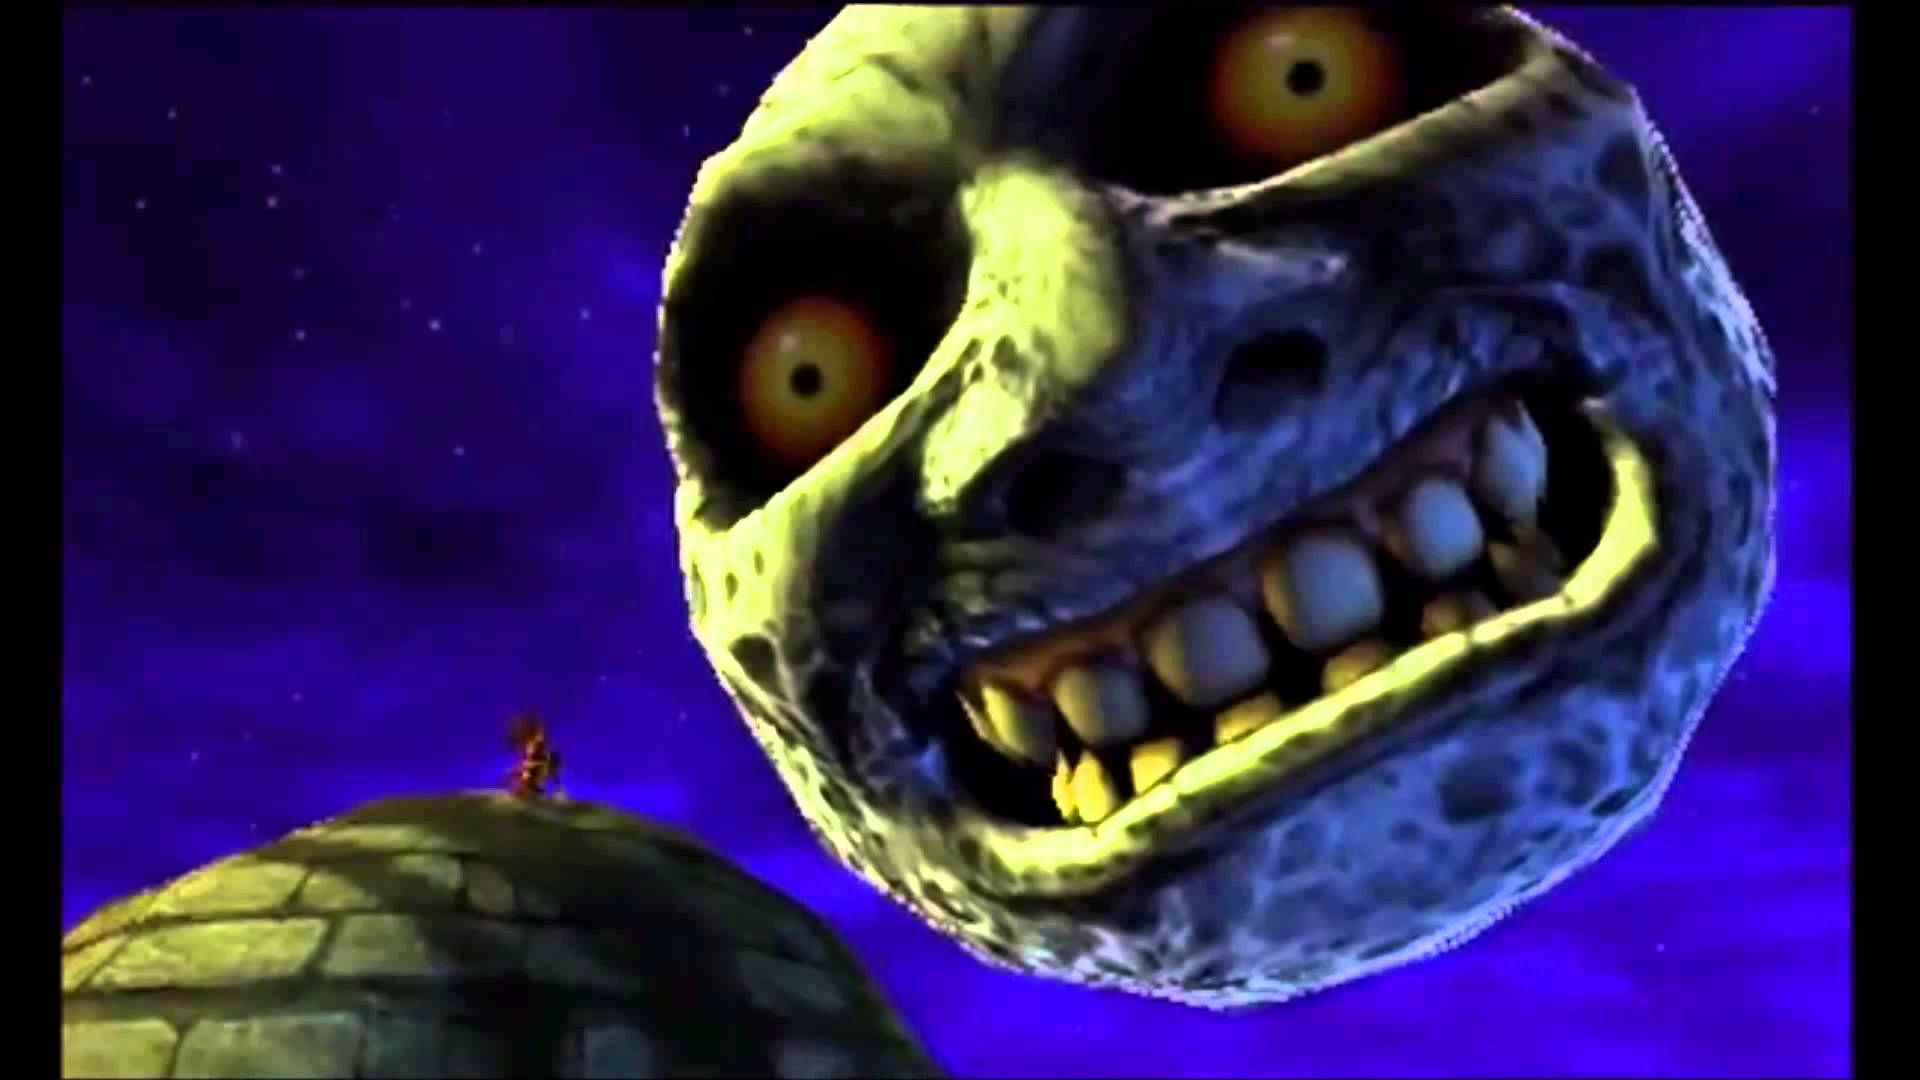 Majoras Mask Moon Giants Guff Review: Th...